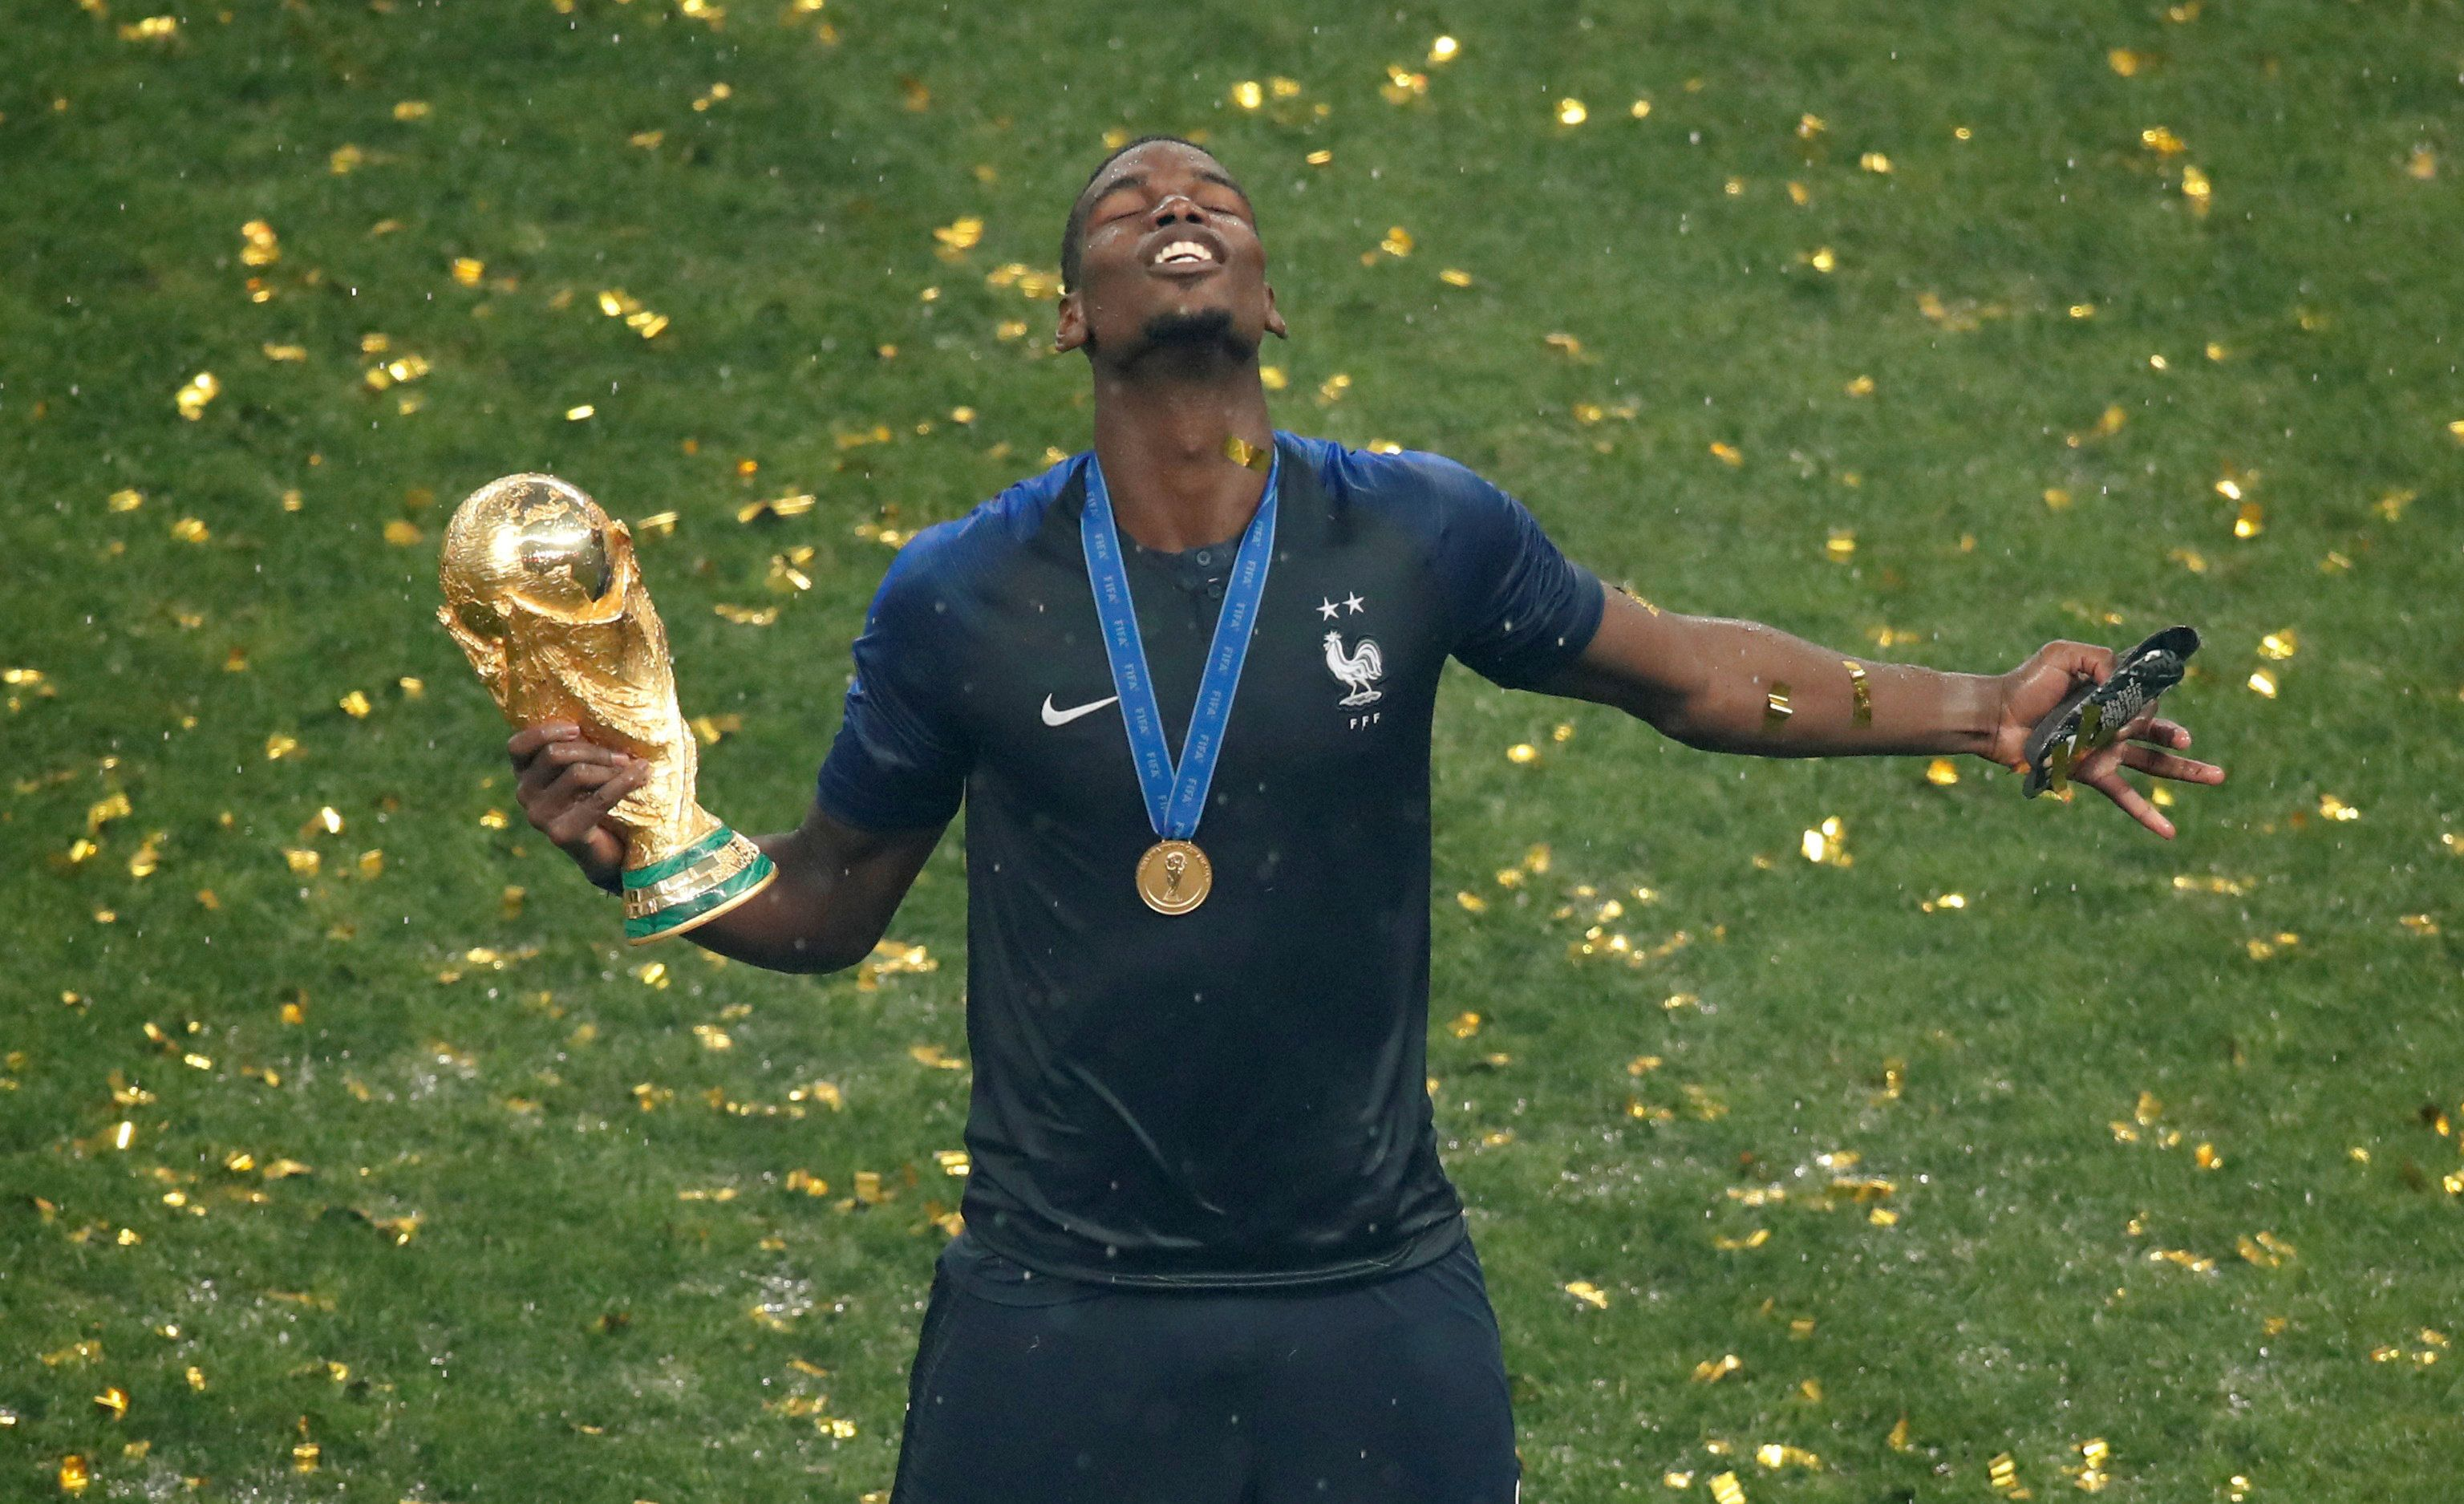 Paul Pogba's Brilliant Pass Was The Best Play Of The World Cup